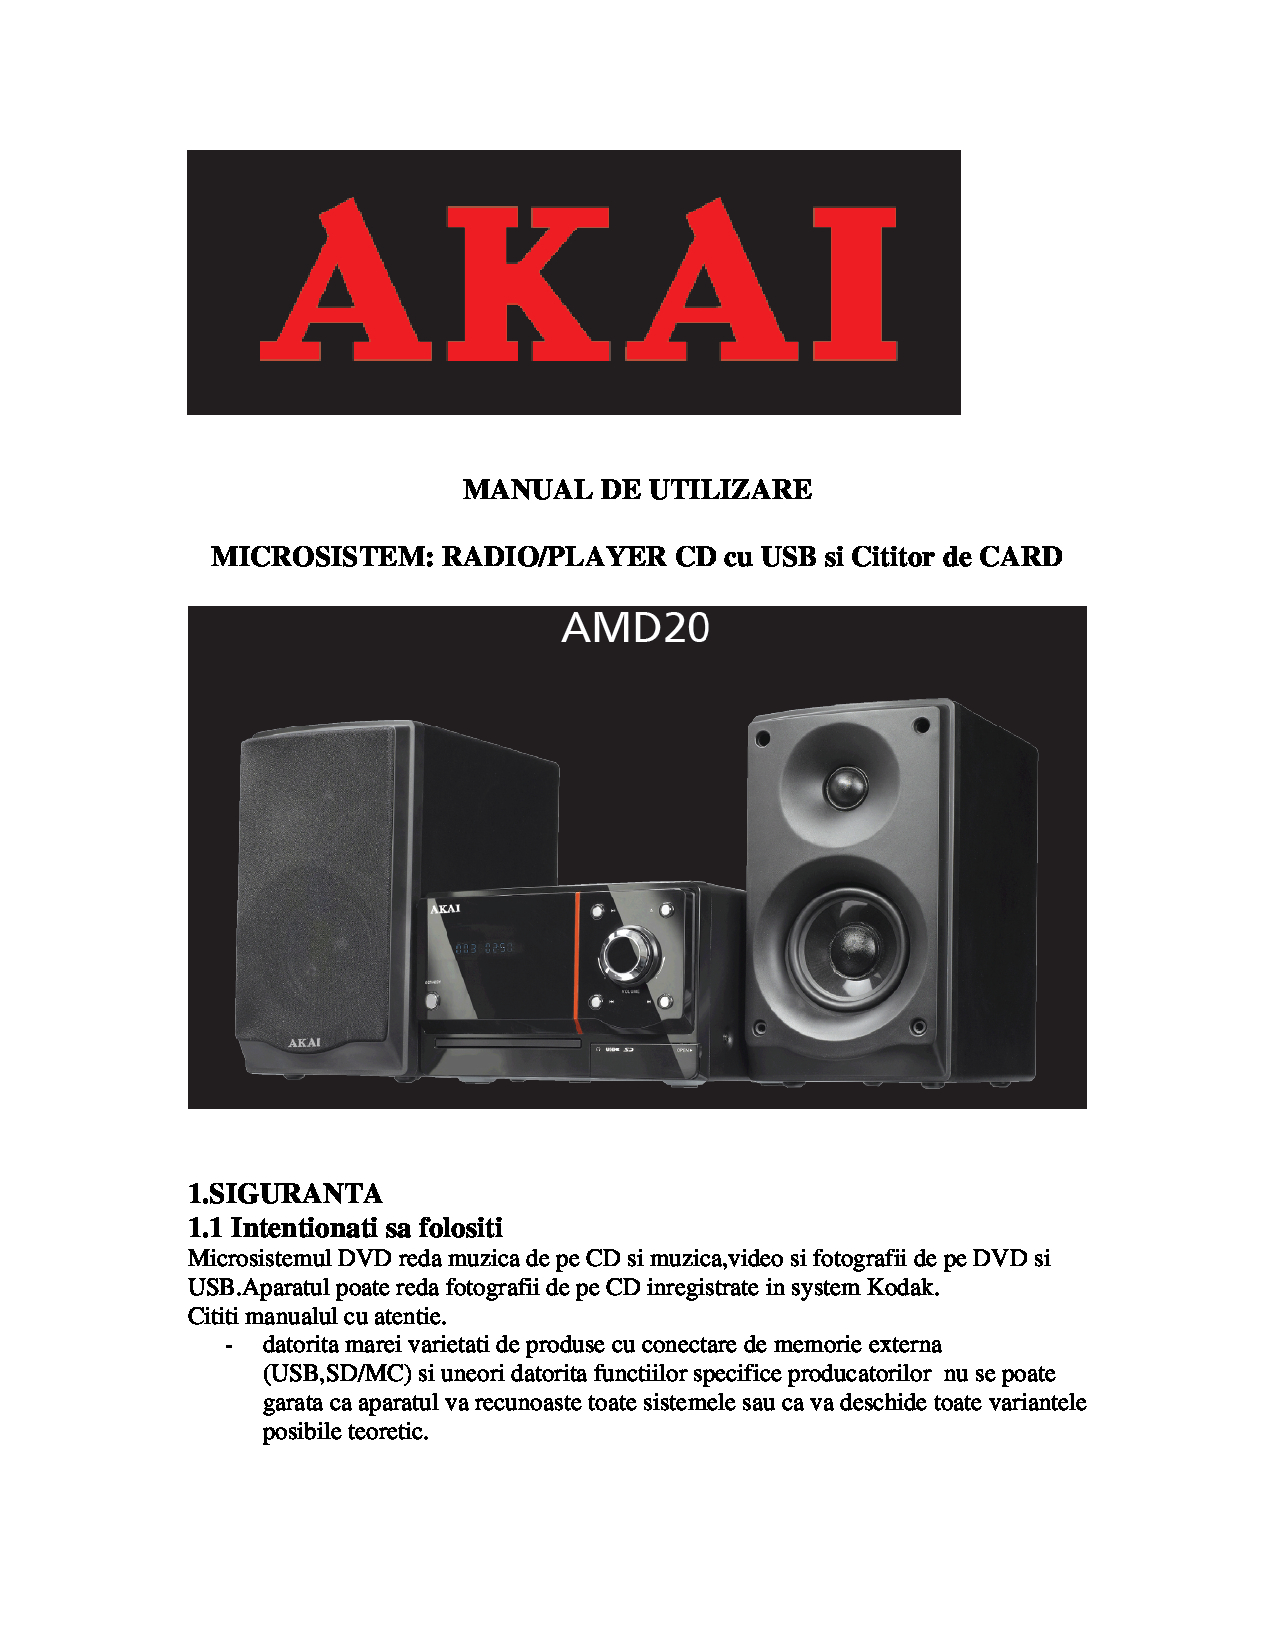 Akai AMD20 Manual